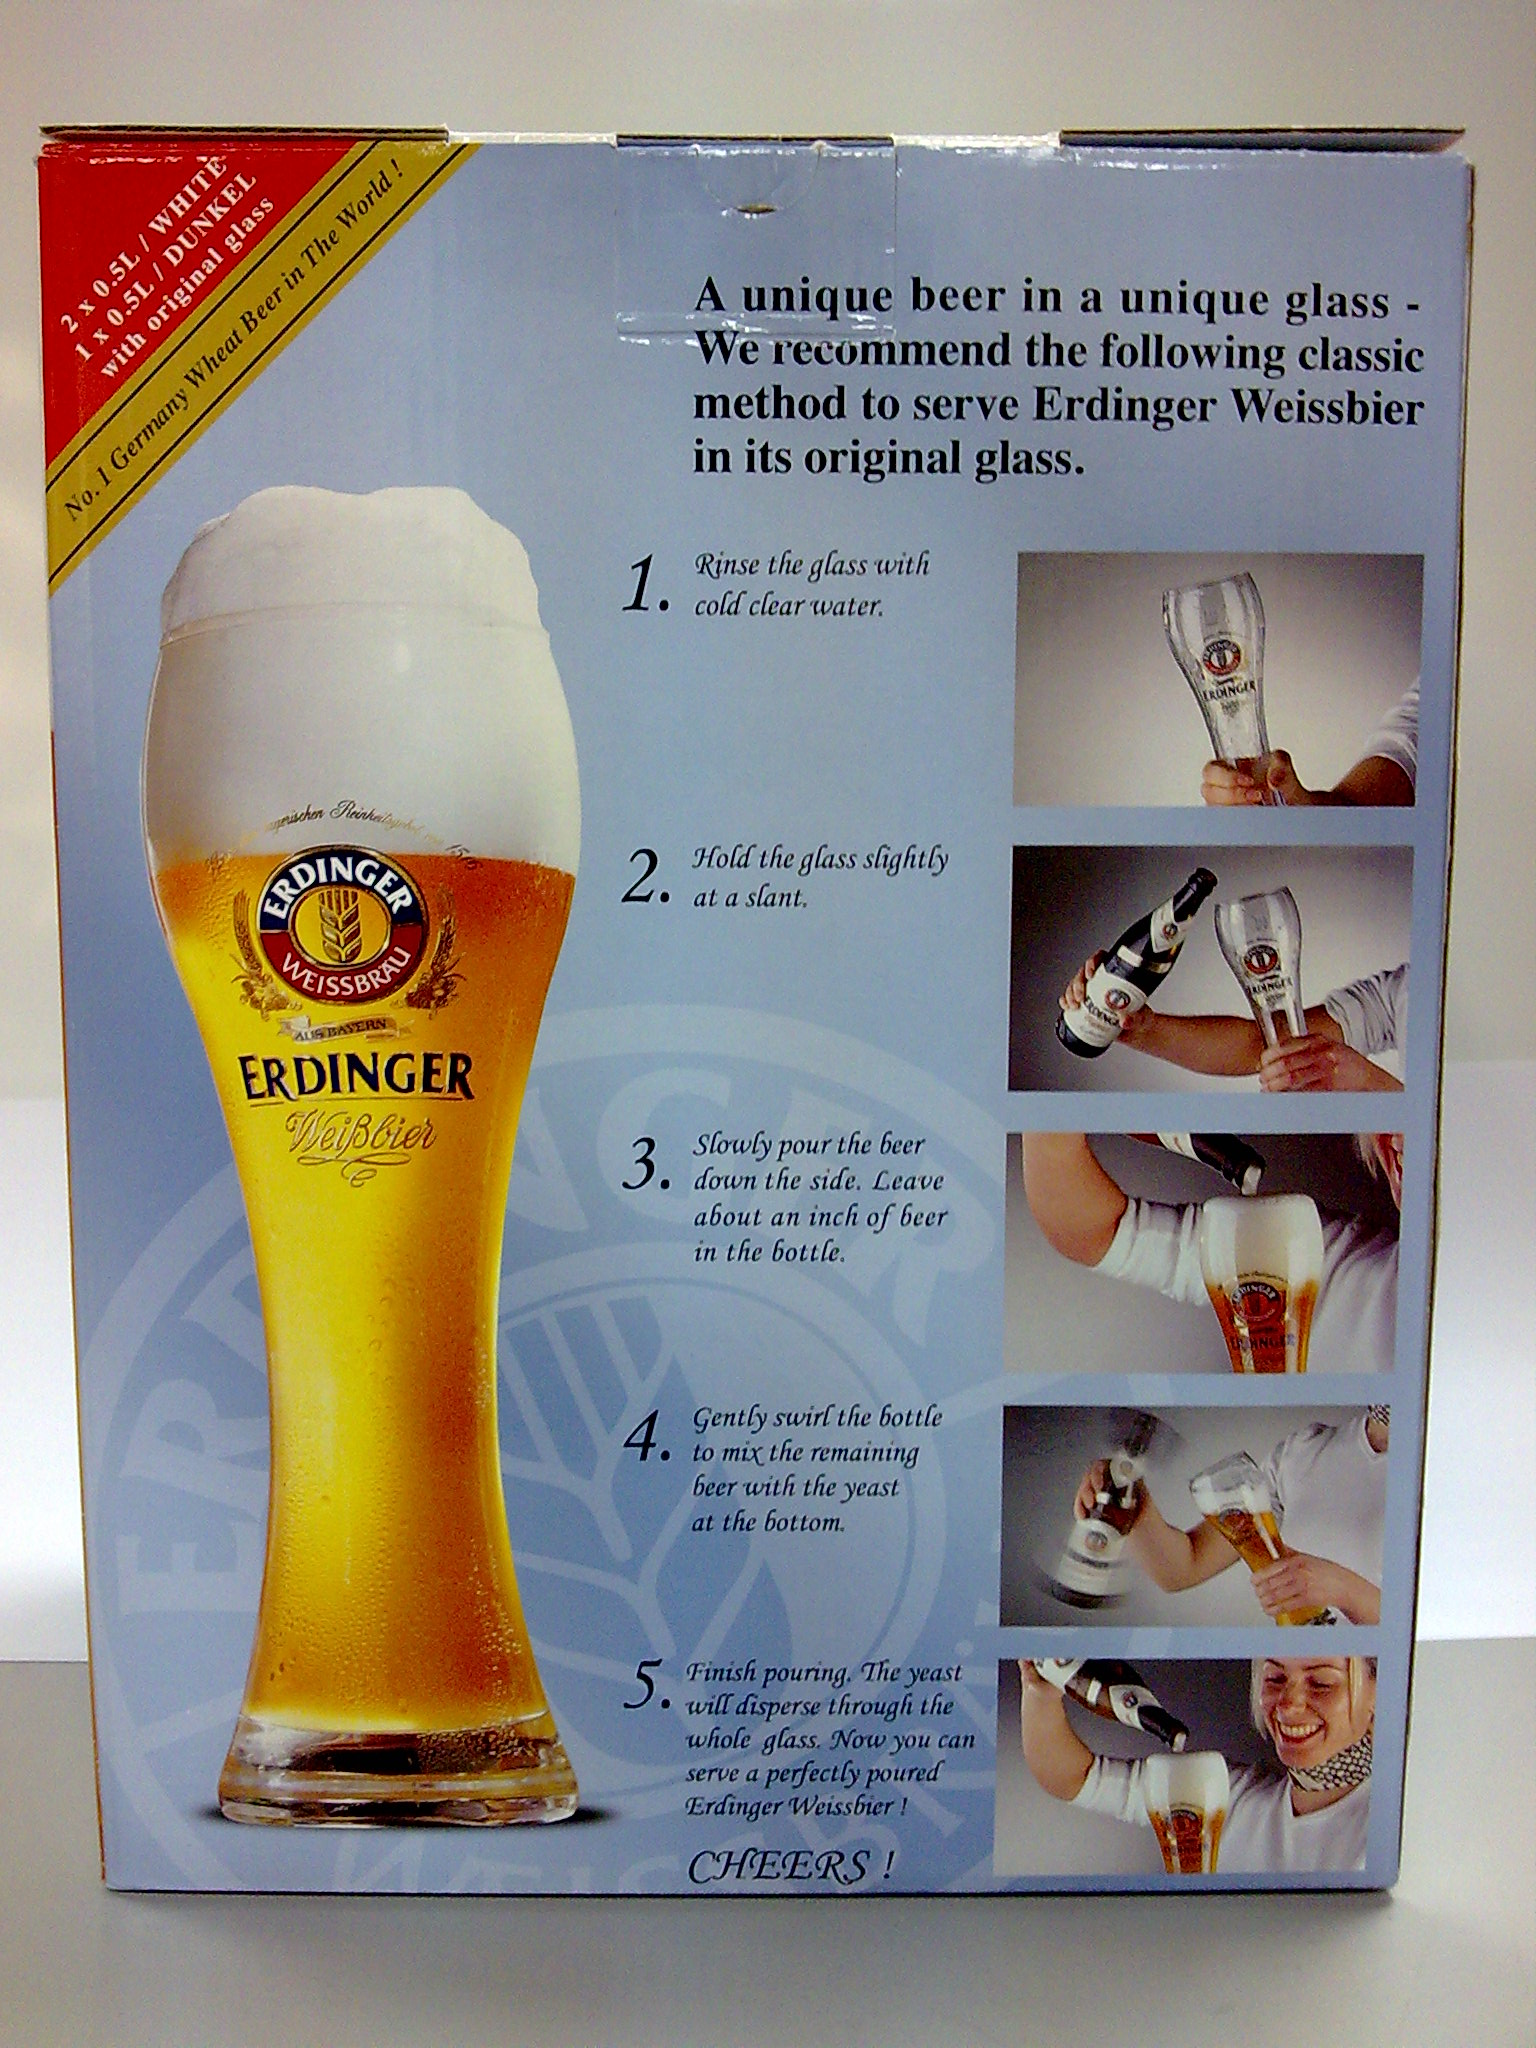 Erdinger Classic Beer Serving Method